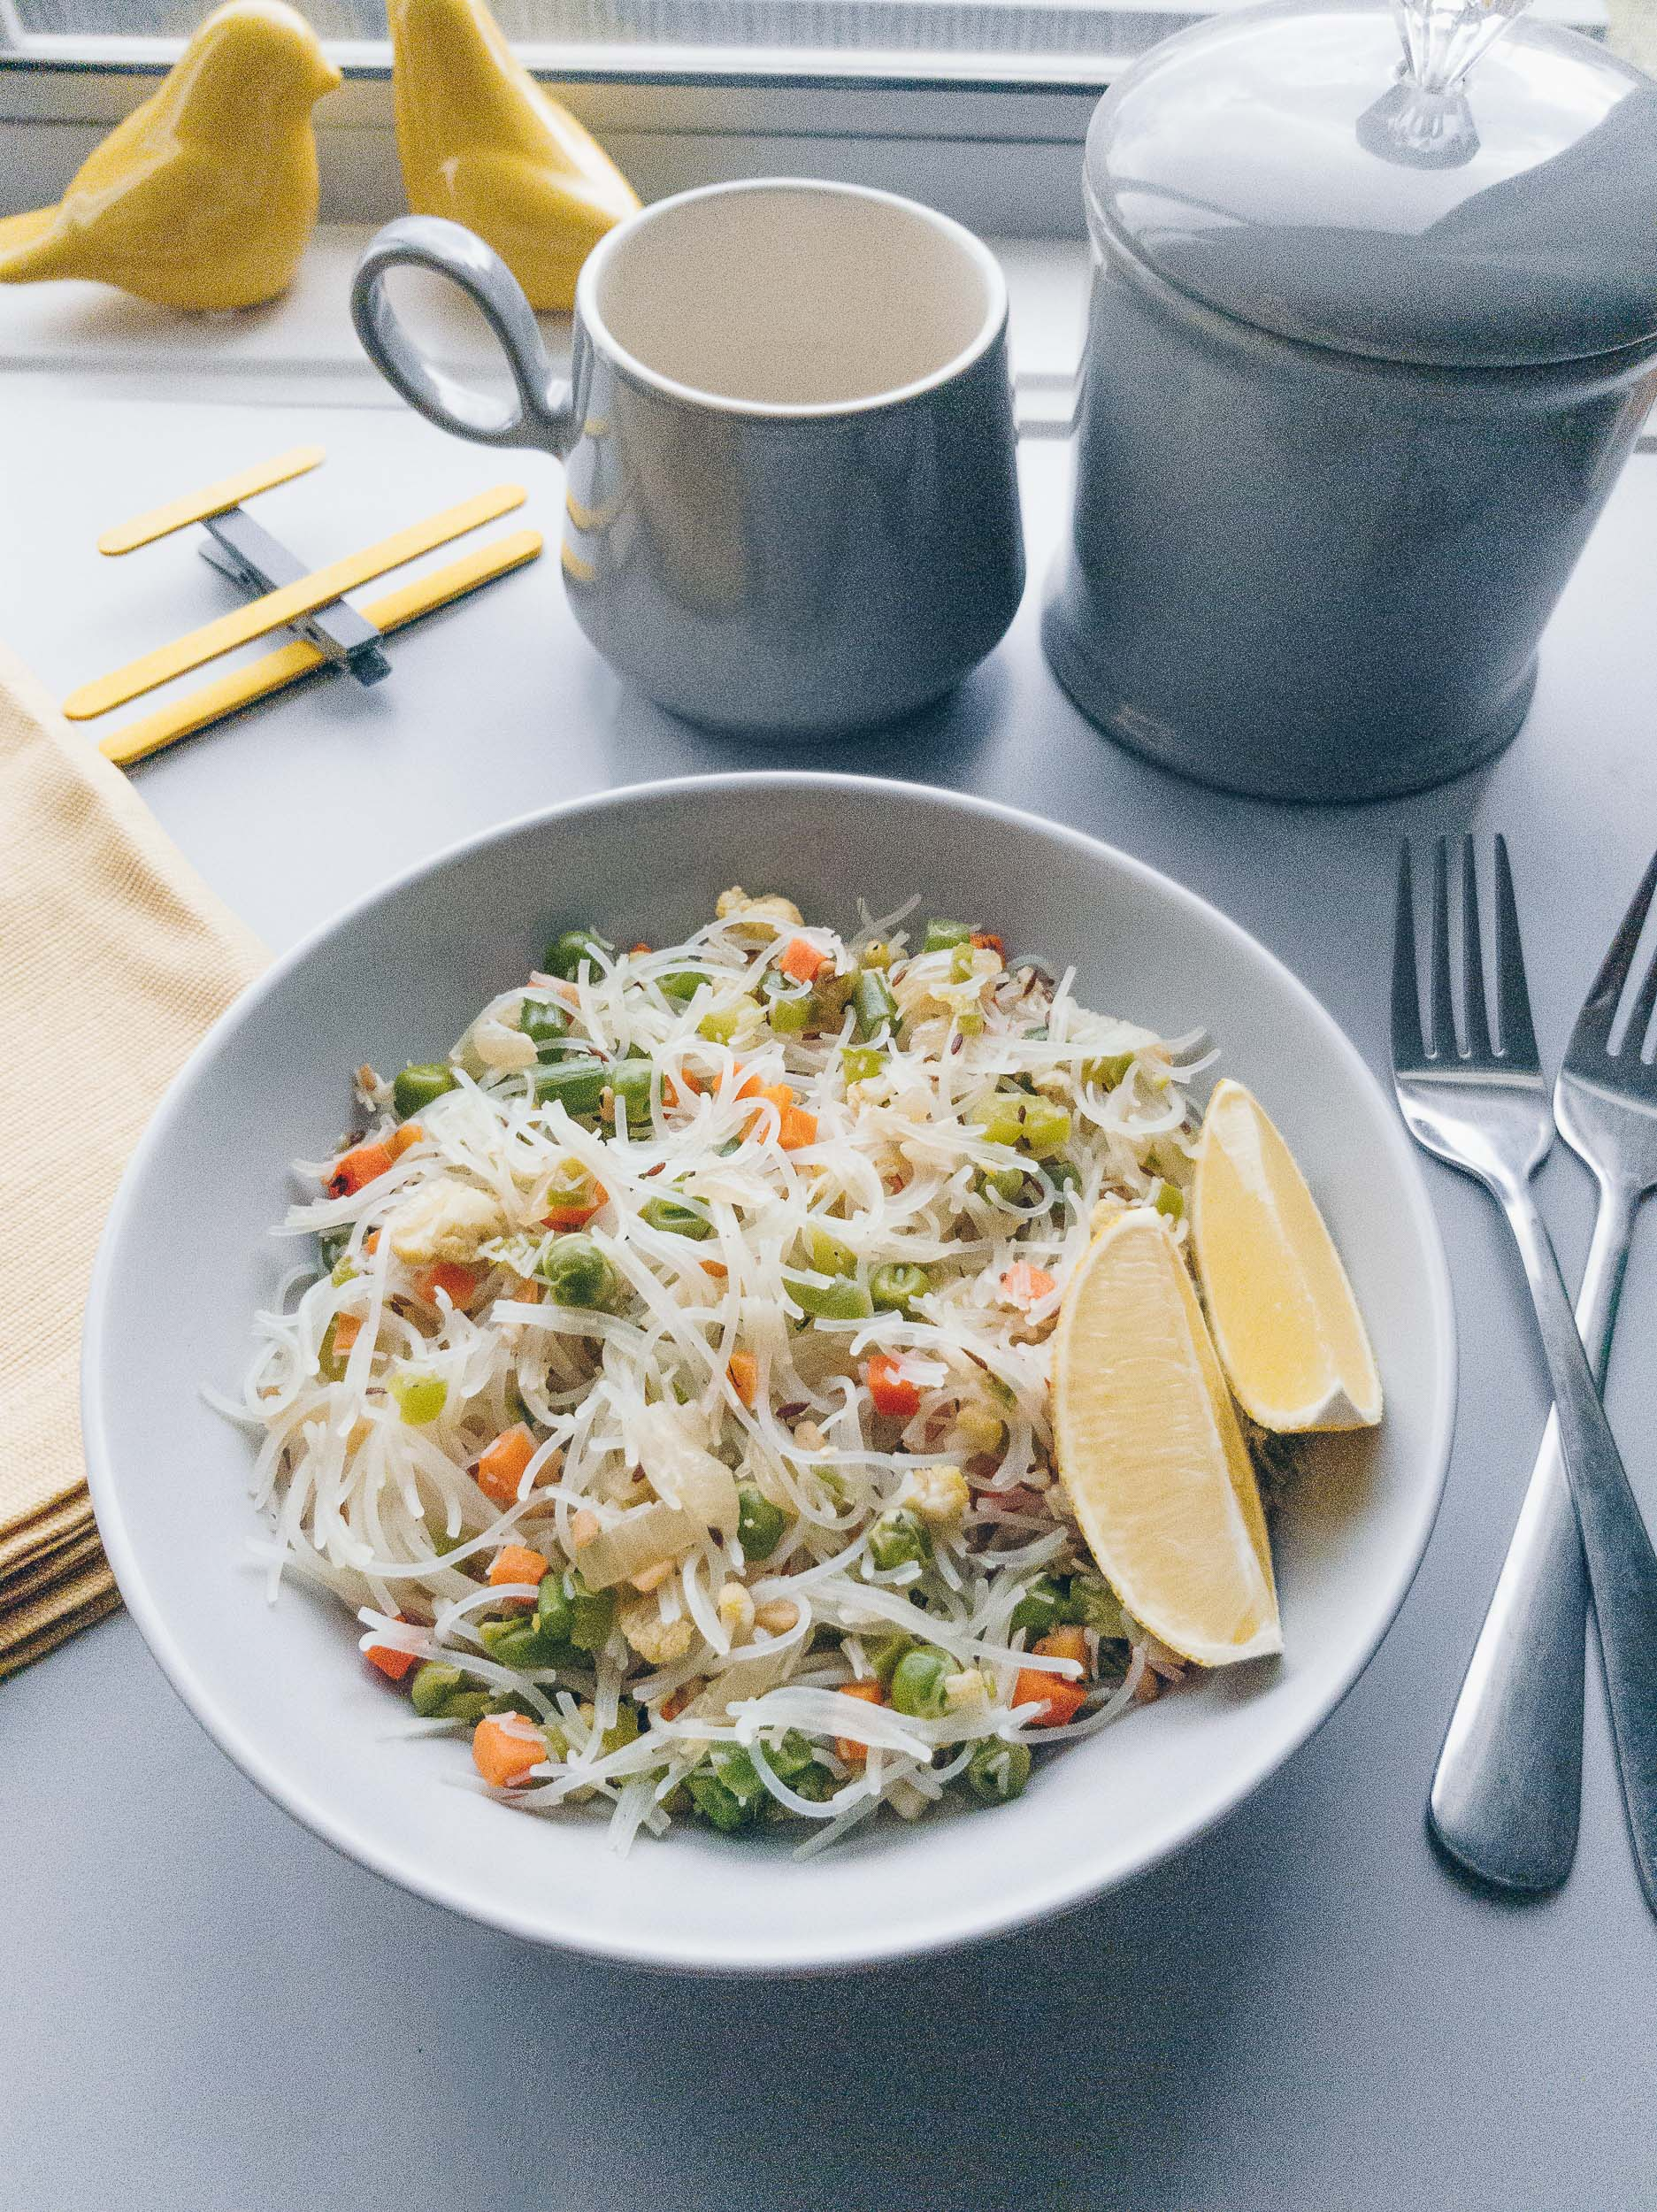 table flatlay of vermicelli with vegetables and lemon on the side and tea-cup alongside